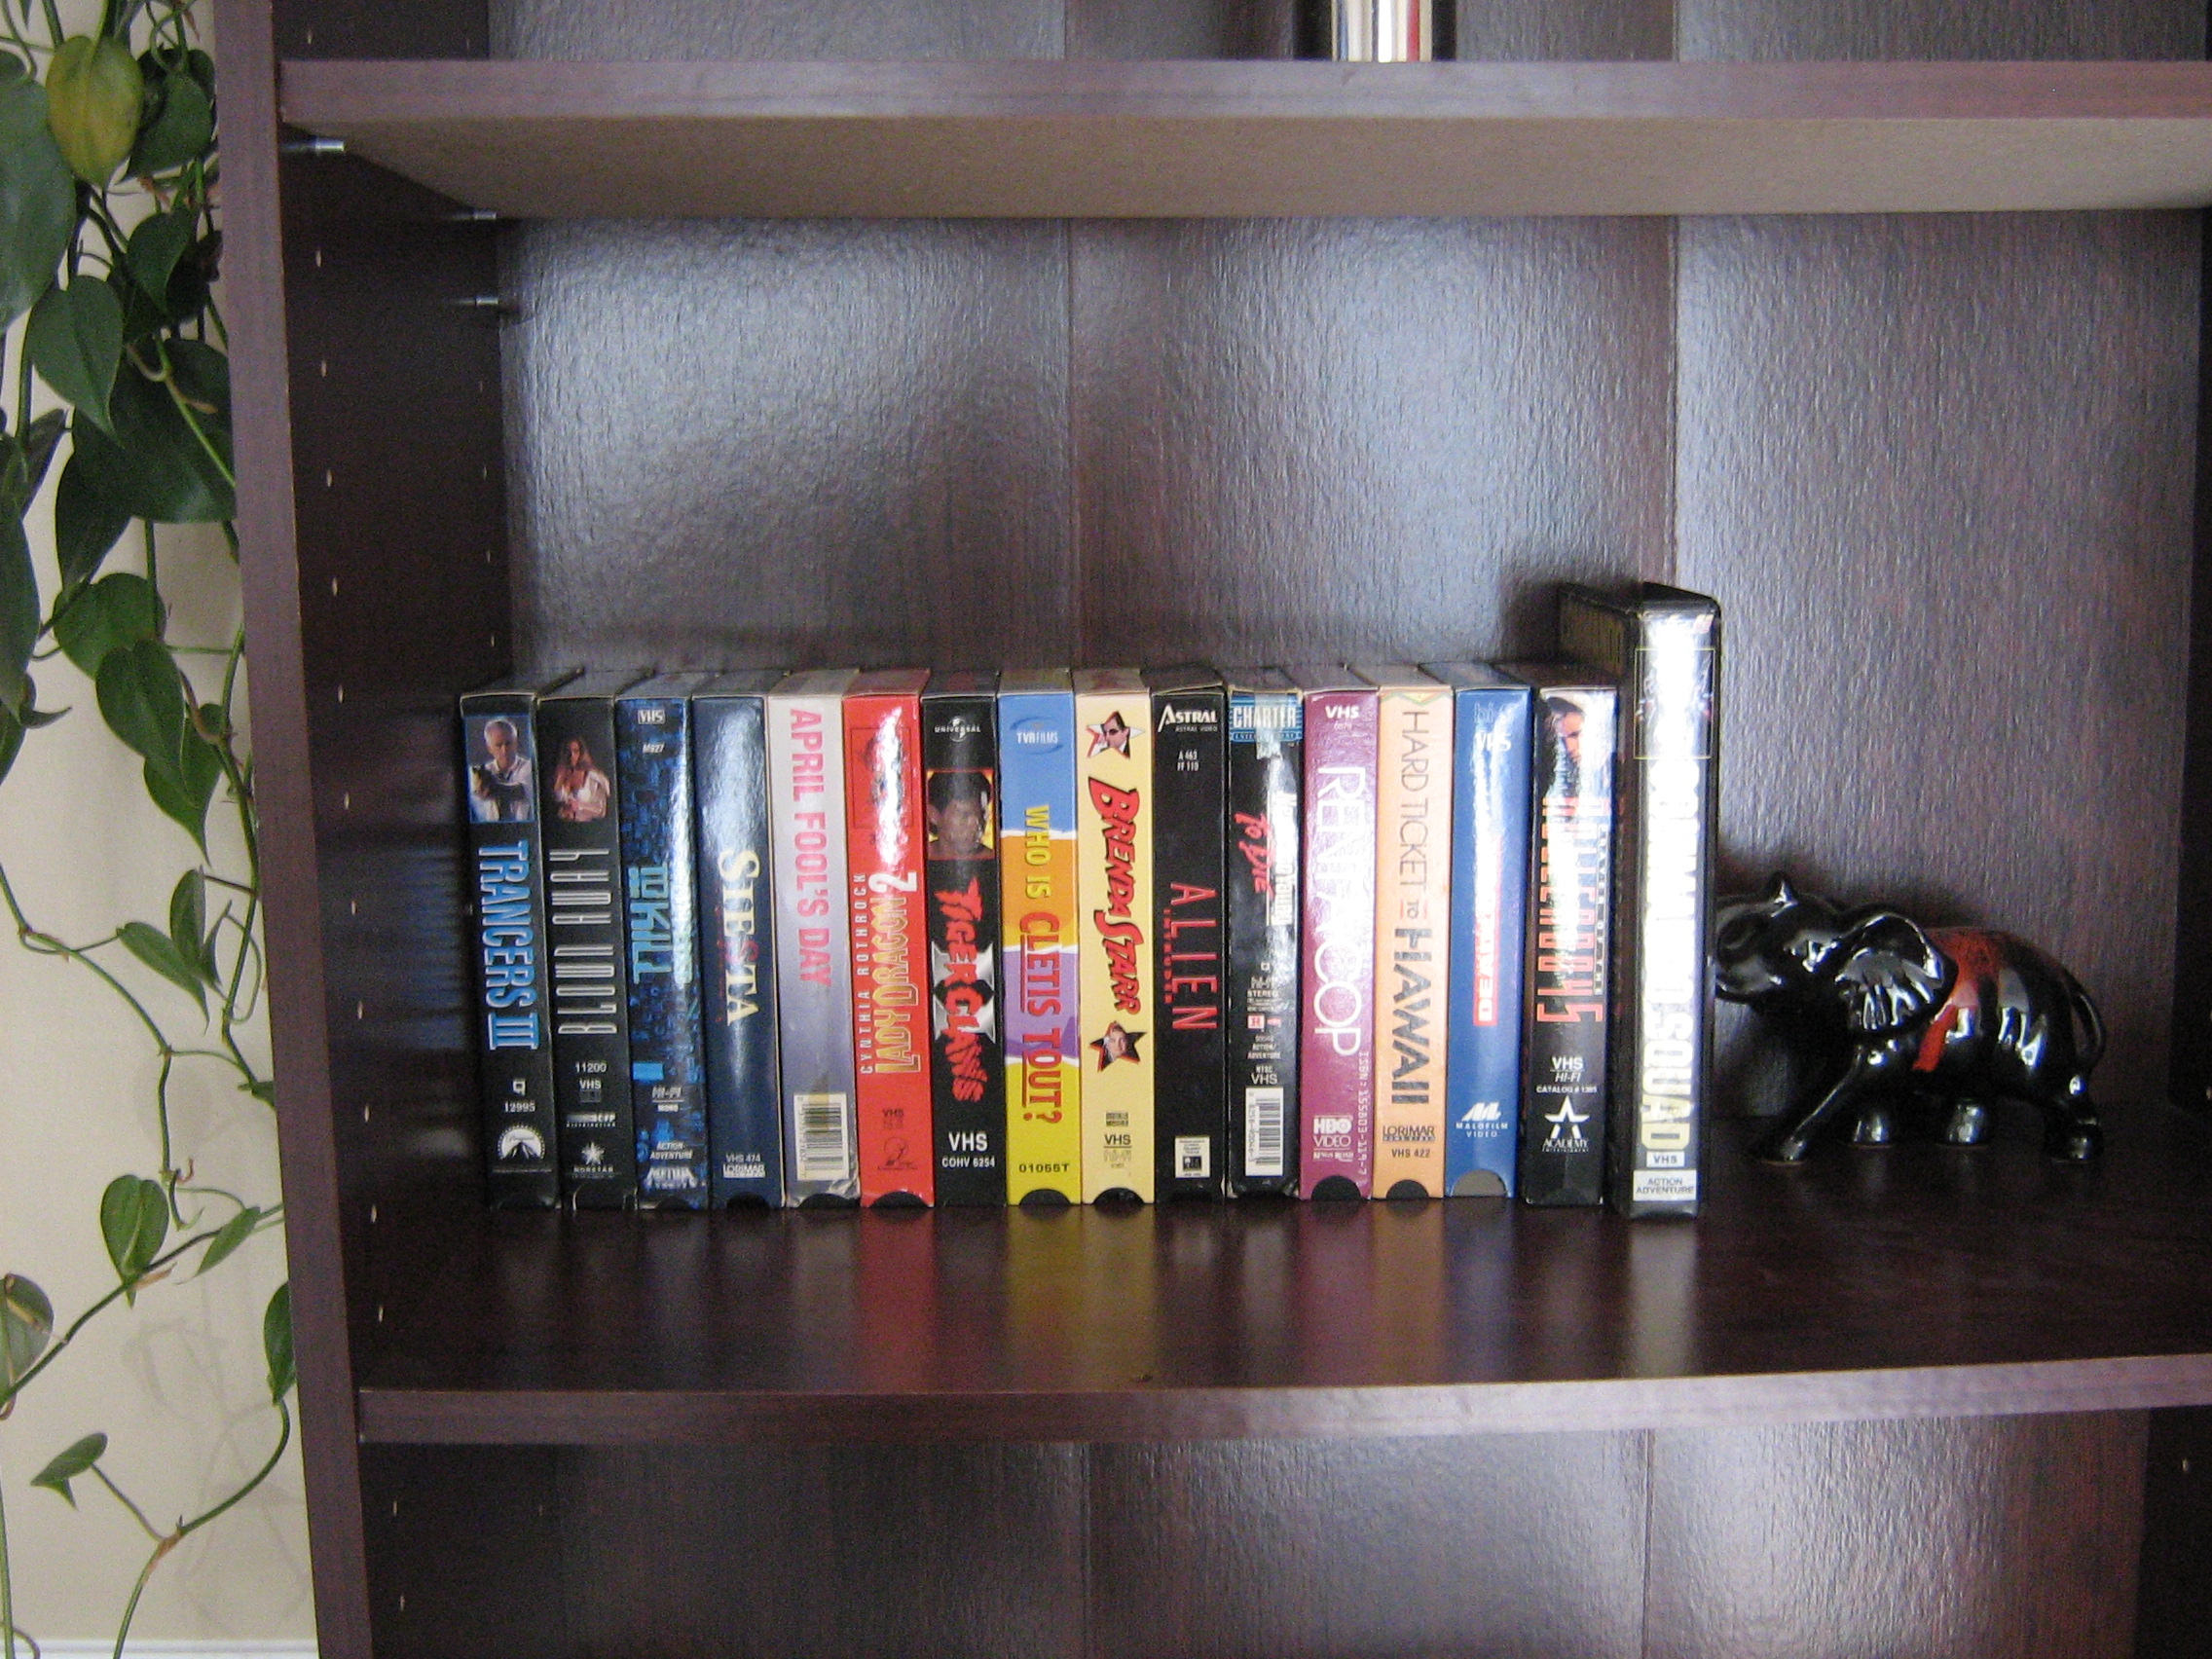 VHS Tapes On A Bookshelf